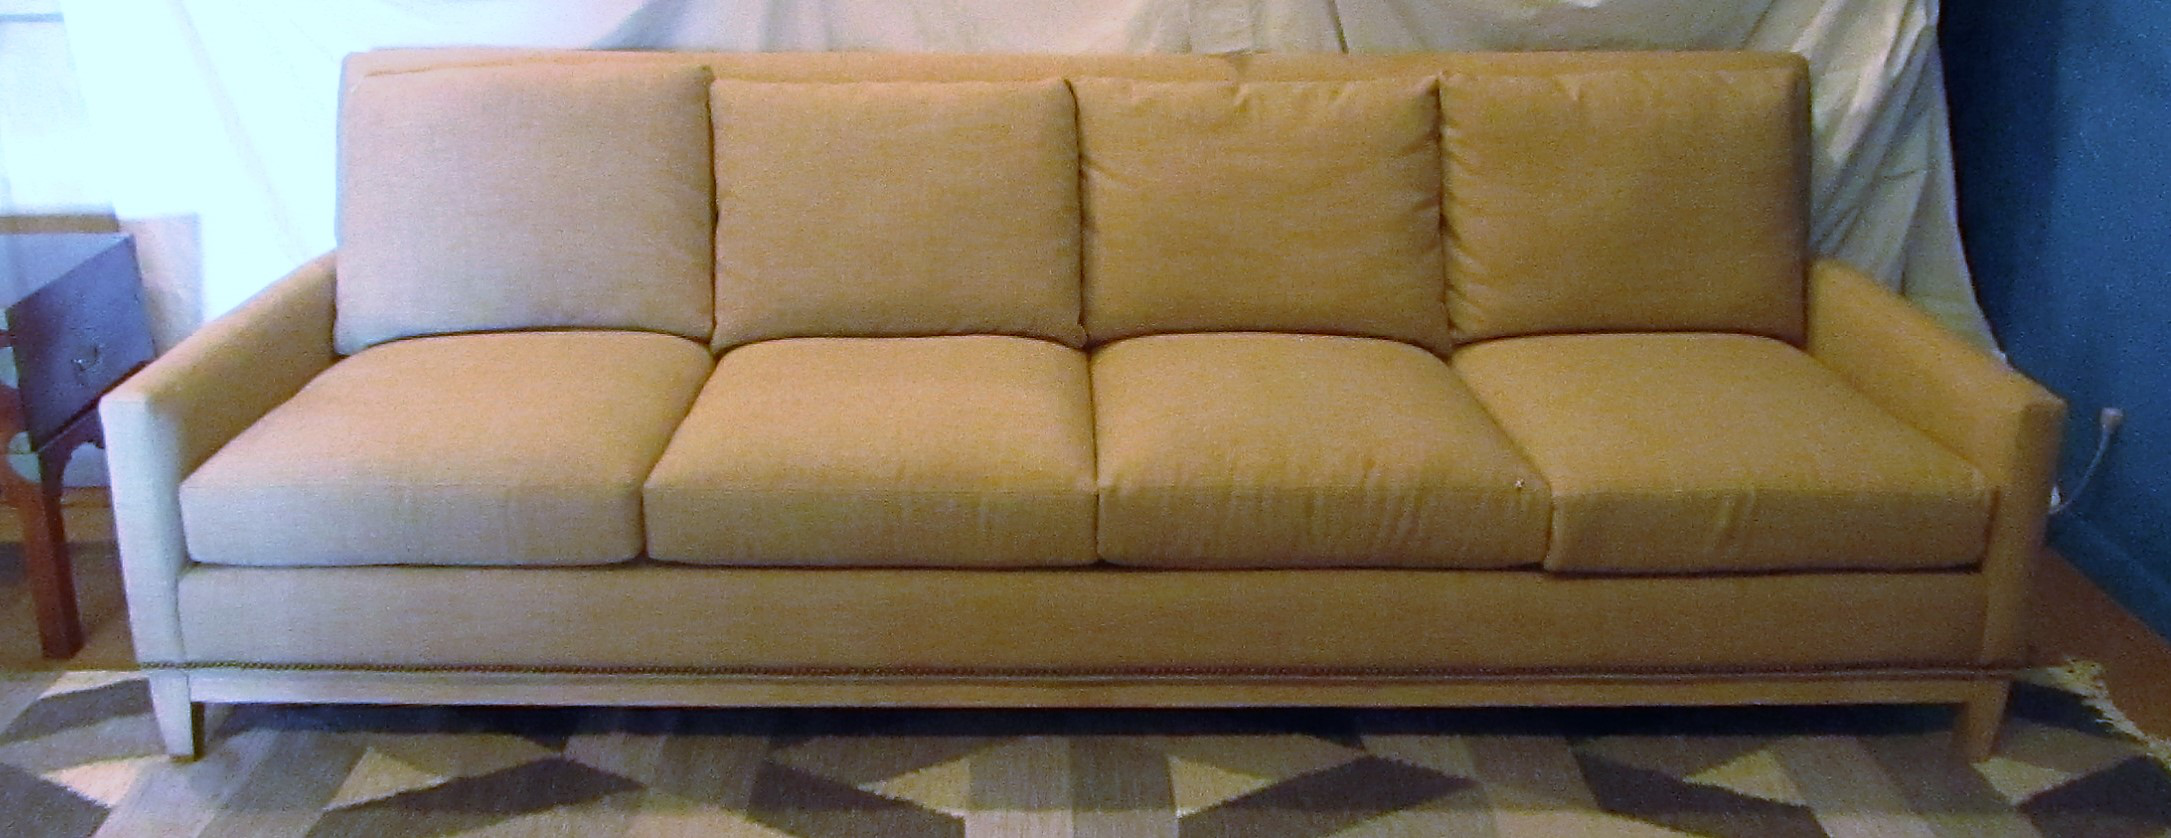 Superieur Holding True To Its Mid Century Modern Roots,this Dante Sofa Brings A  Sophisticated